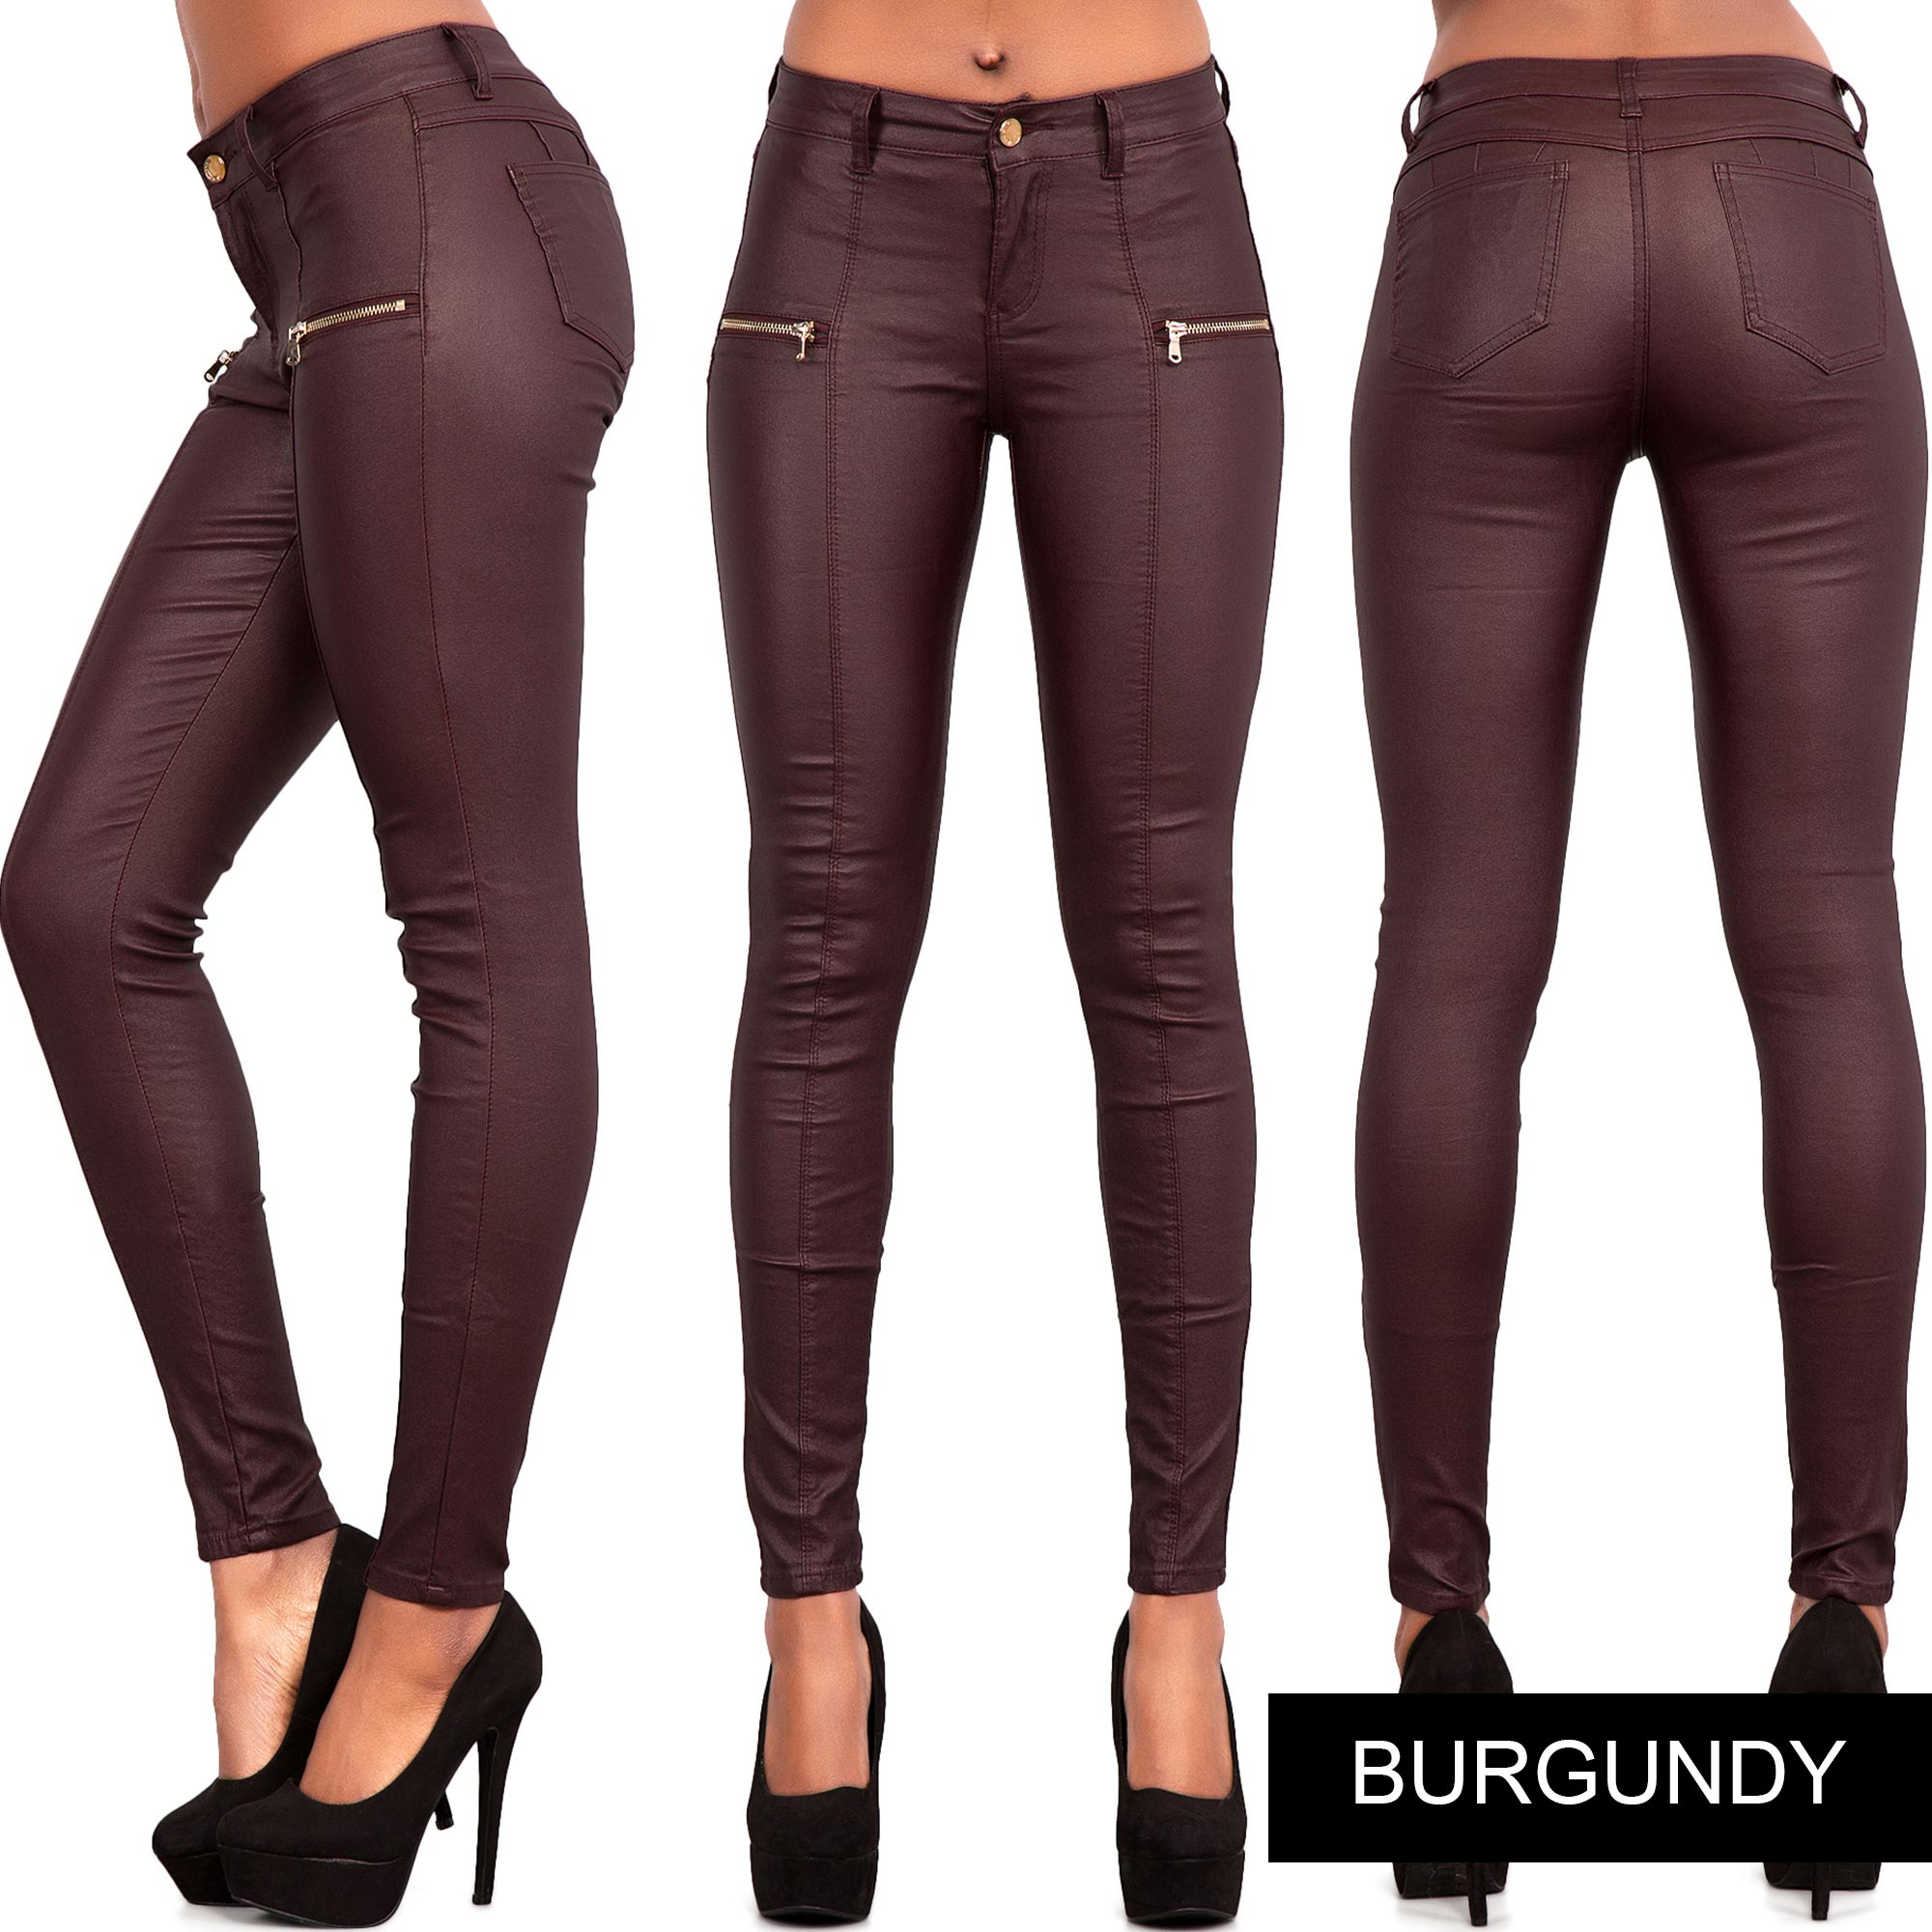 NEW LADIES WOMEN BLACK BROWN LEATHER LOOK LEGGINGS STRETCHY ...